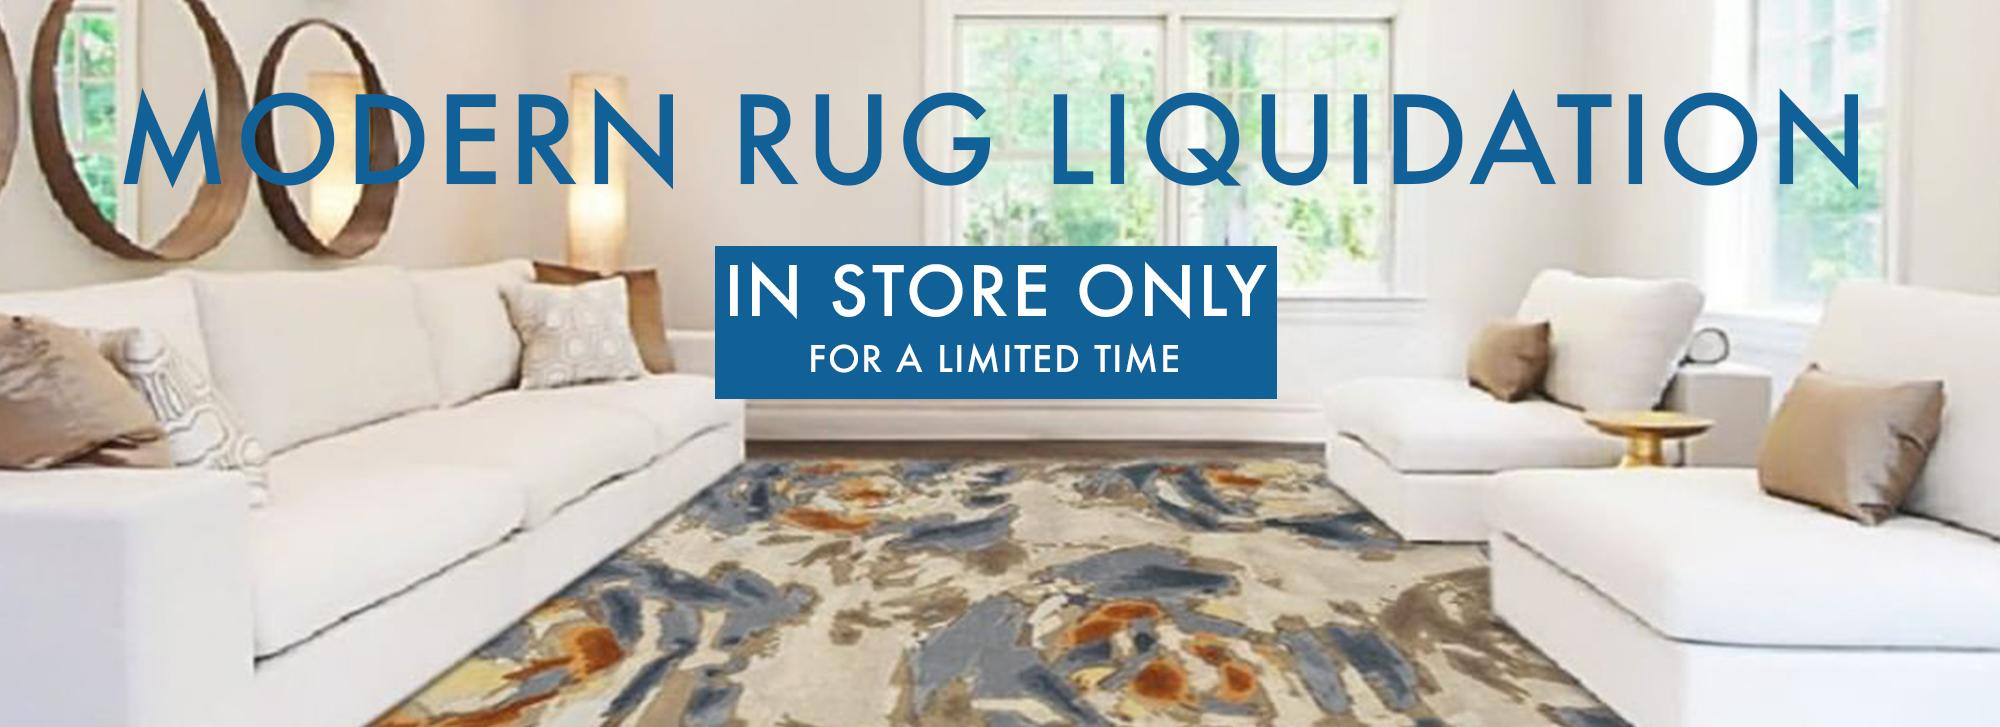 Welcome to The Rug Warehouse